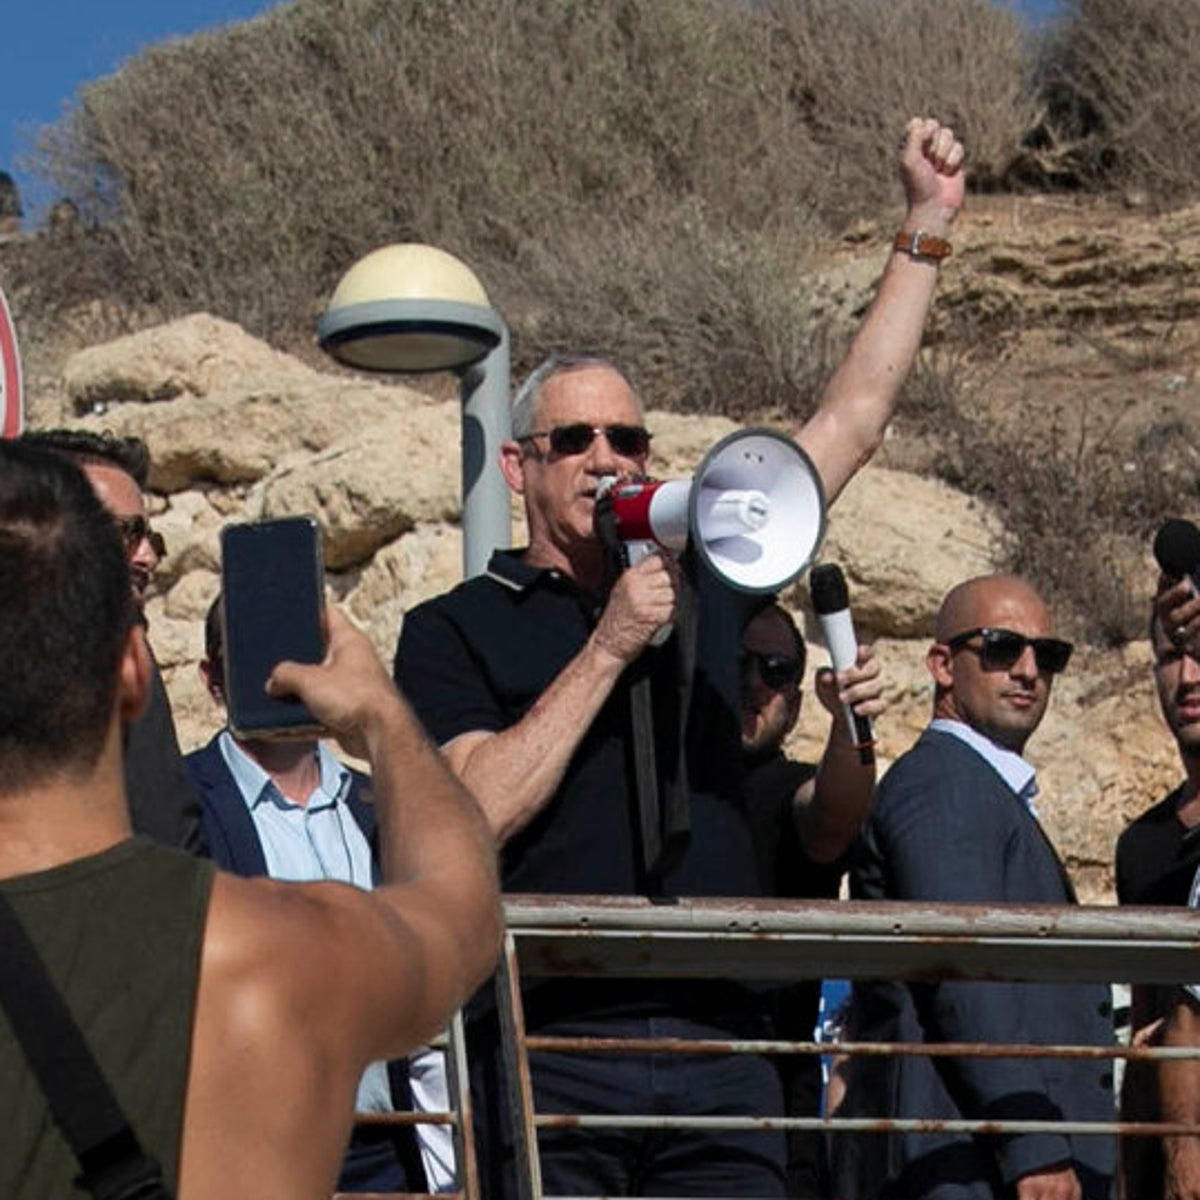 Benny Gantz, center behind, is surrounded by Tel Avivians at a local beach, during his latest election campaign.